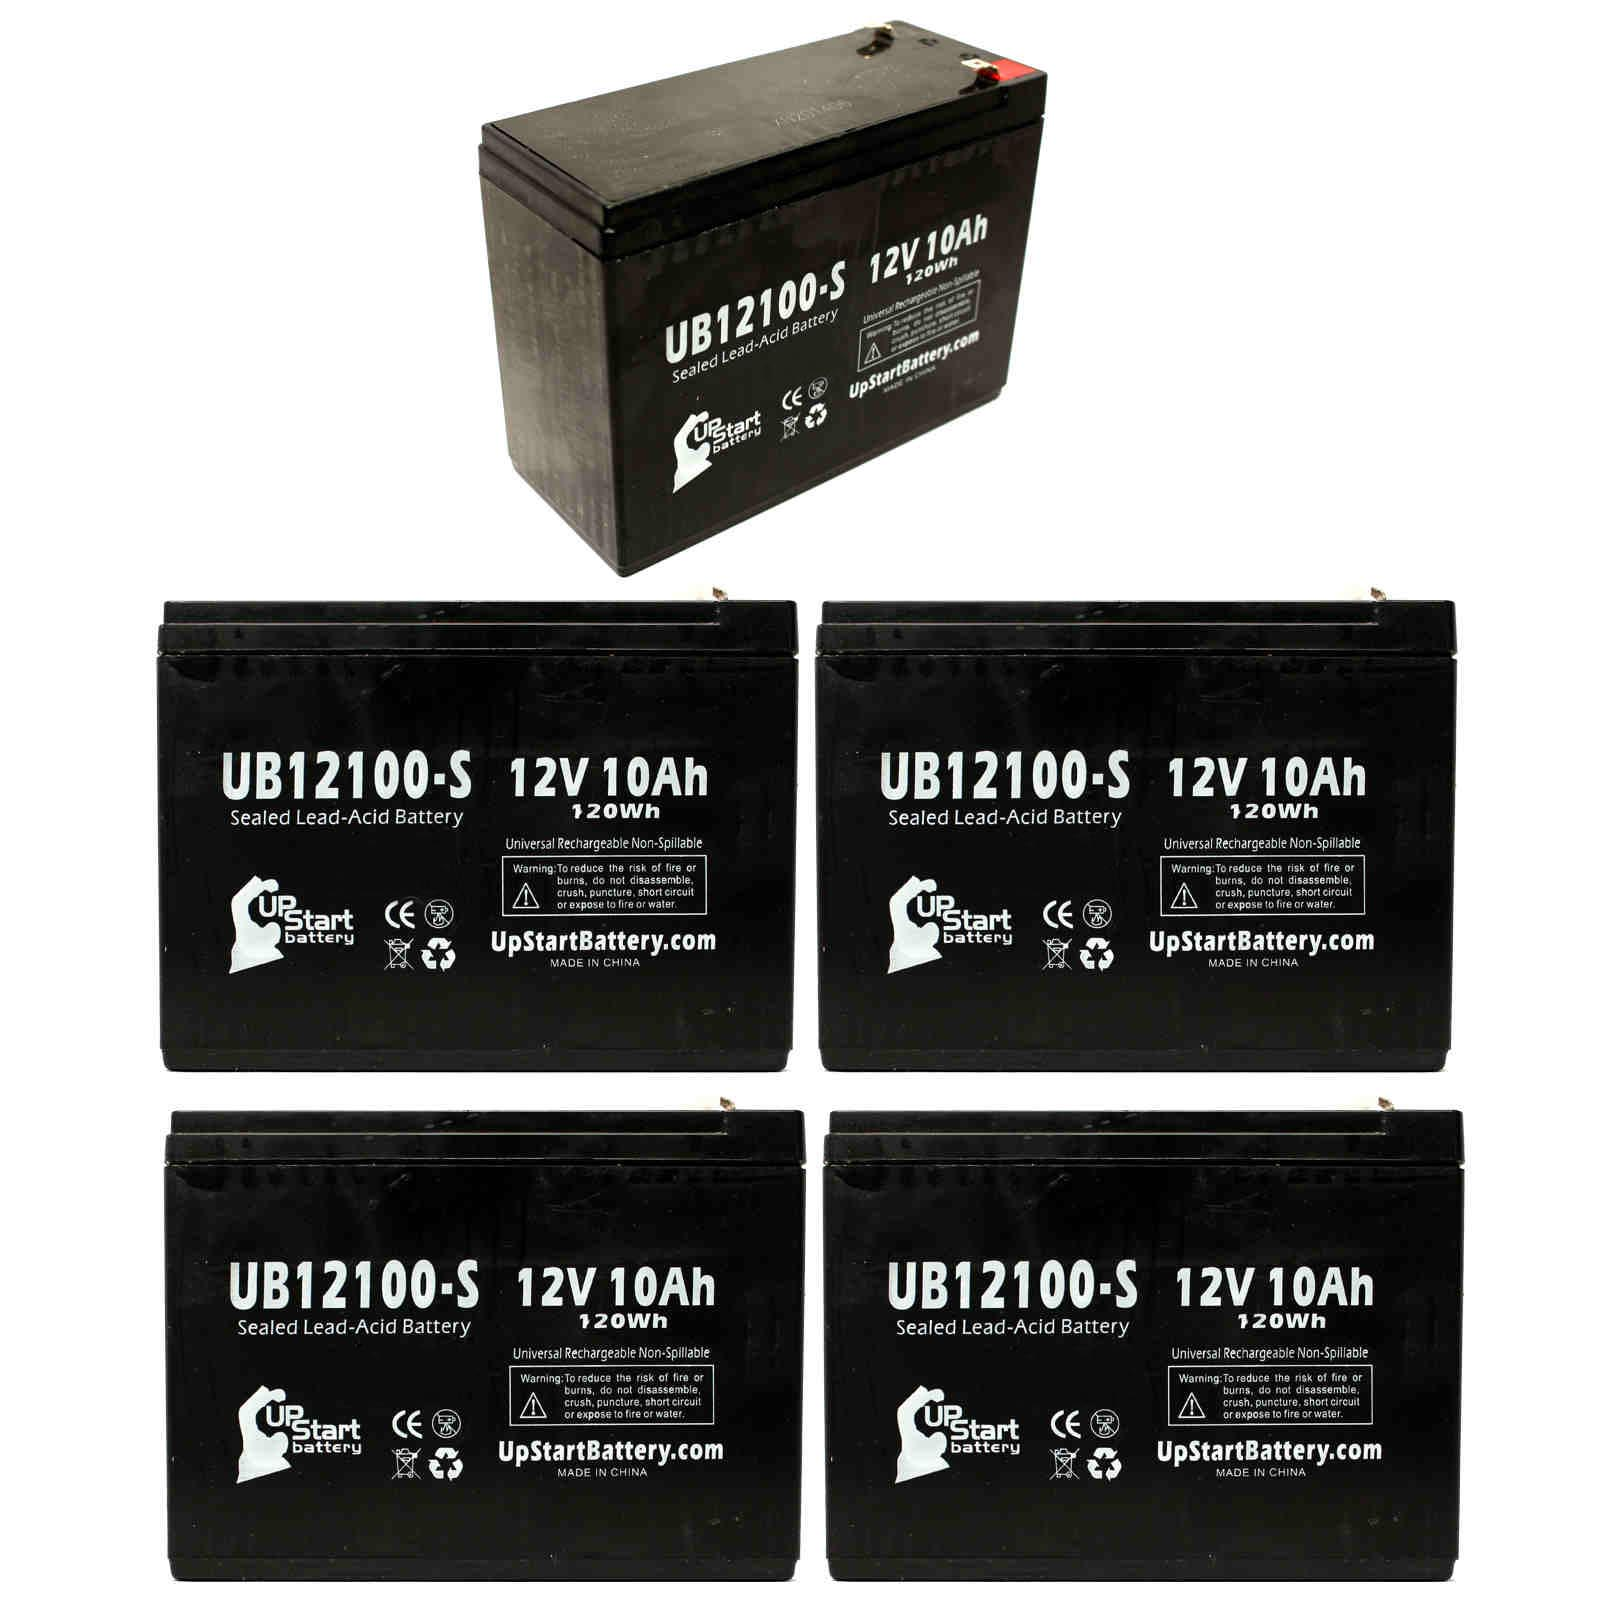 5-Pack UB12100-S Universal Sealed Lead Acid Battery (12V, 10Ah, F2 Terminal, AGM, SLA) Replacement - Compatible With Schwinn S500, S350, Missile FS, S180, S750, S600, Razor Rebellion Chopper - image 4 of 4